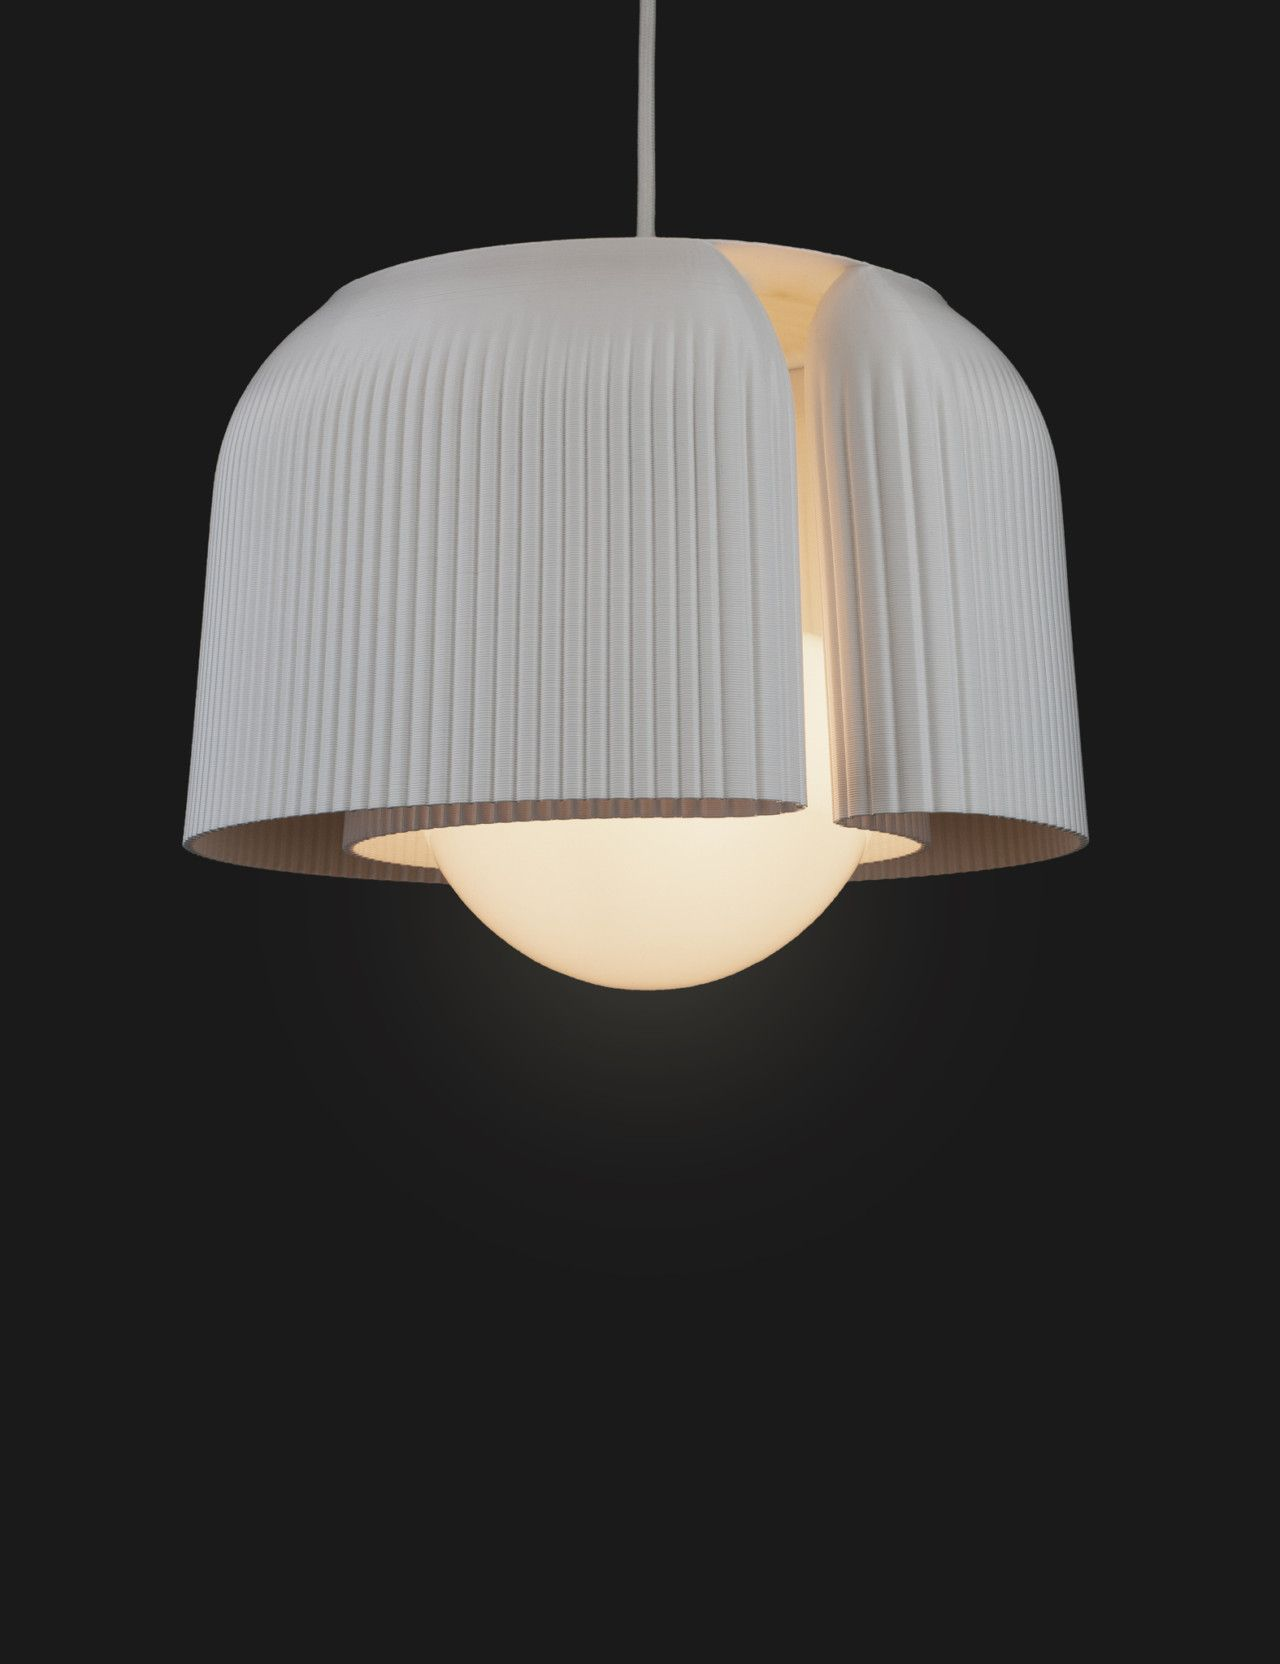 Plumen X Batch Works 3d Printed Lampshades Glow With Potential Glass And Aluminium Metal Lamp Lampshades